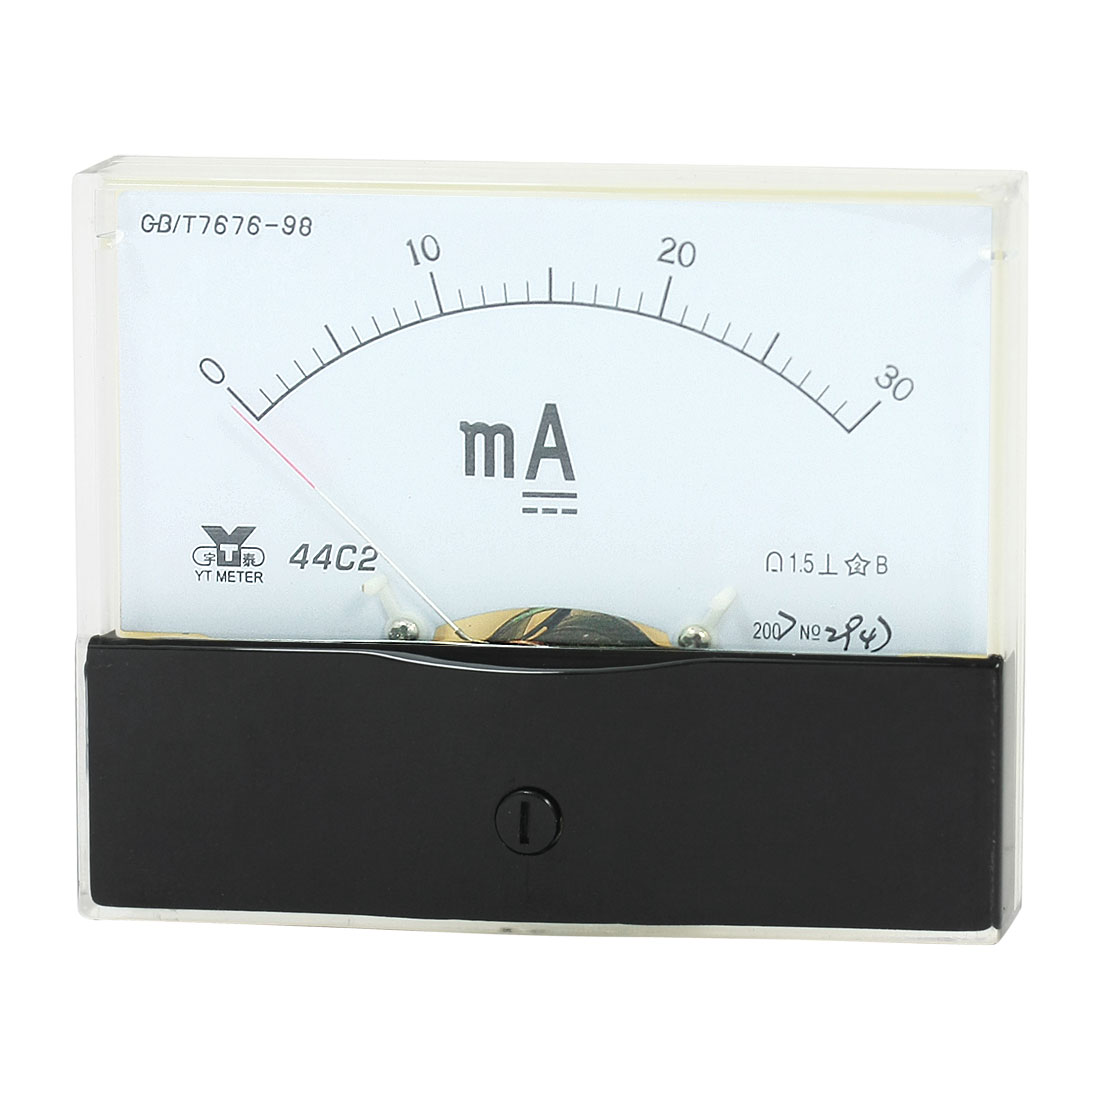 Rectangle Measurement Tool Analog Panel Ammeter Gauge DC 0 - 30mA Measuring Range 44C2